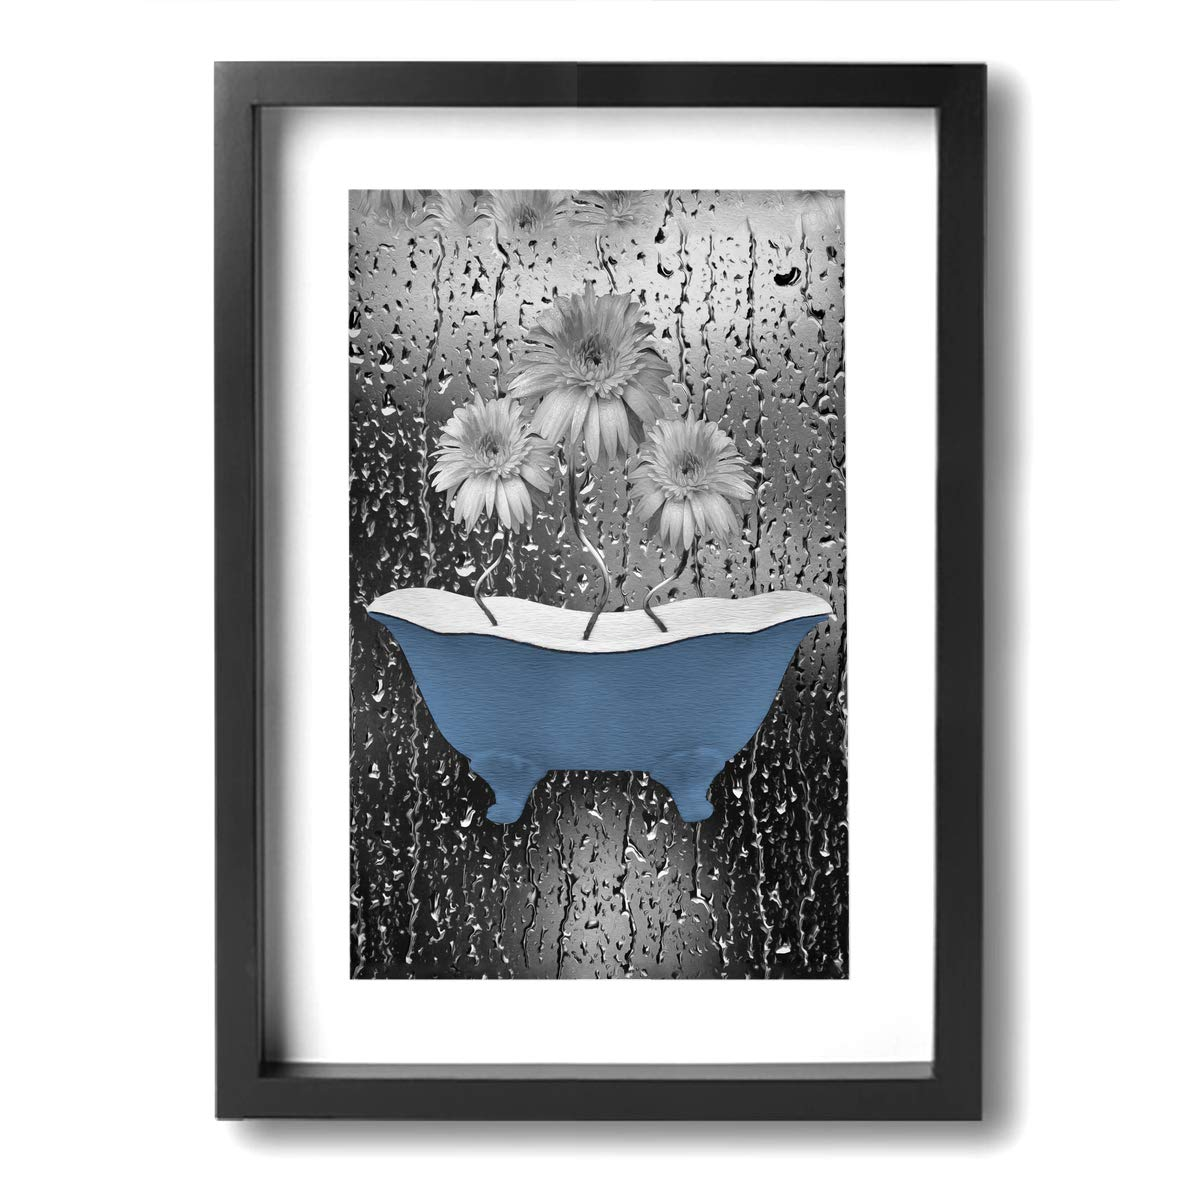 Ale art modern frame bathroom canvas paintings blue gray bathroom daisy flowers raindrops vintage rustic theme pictures bath wall art ready to hang